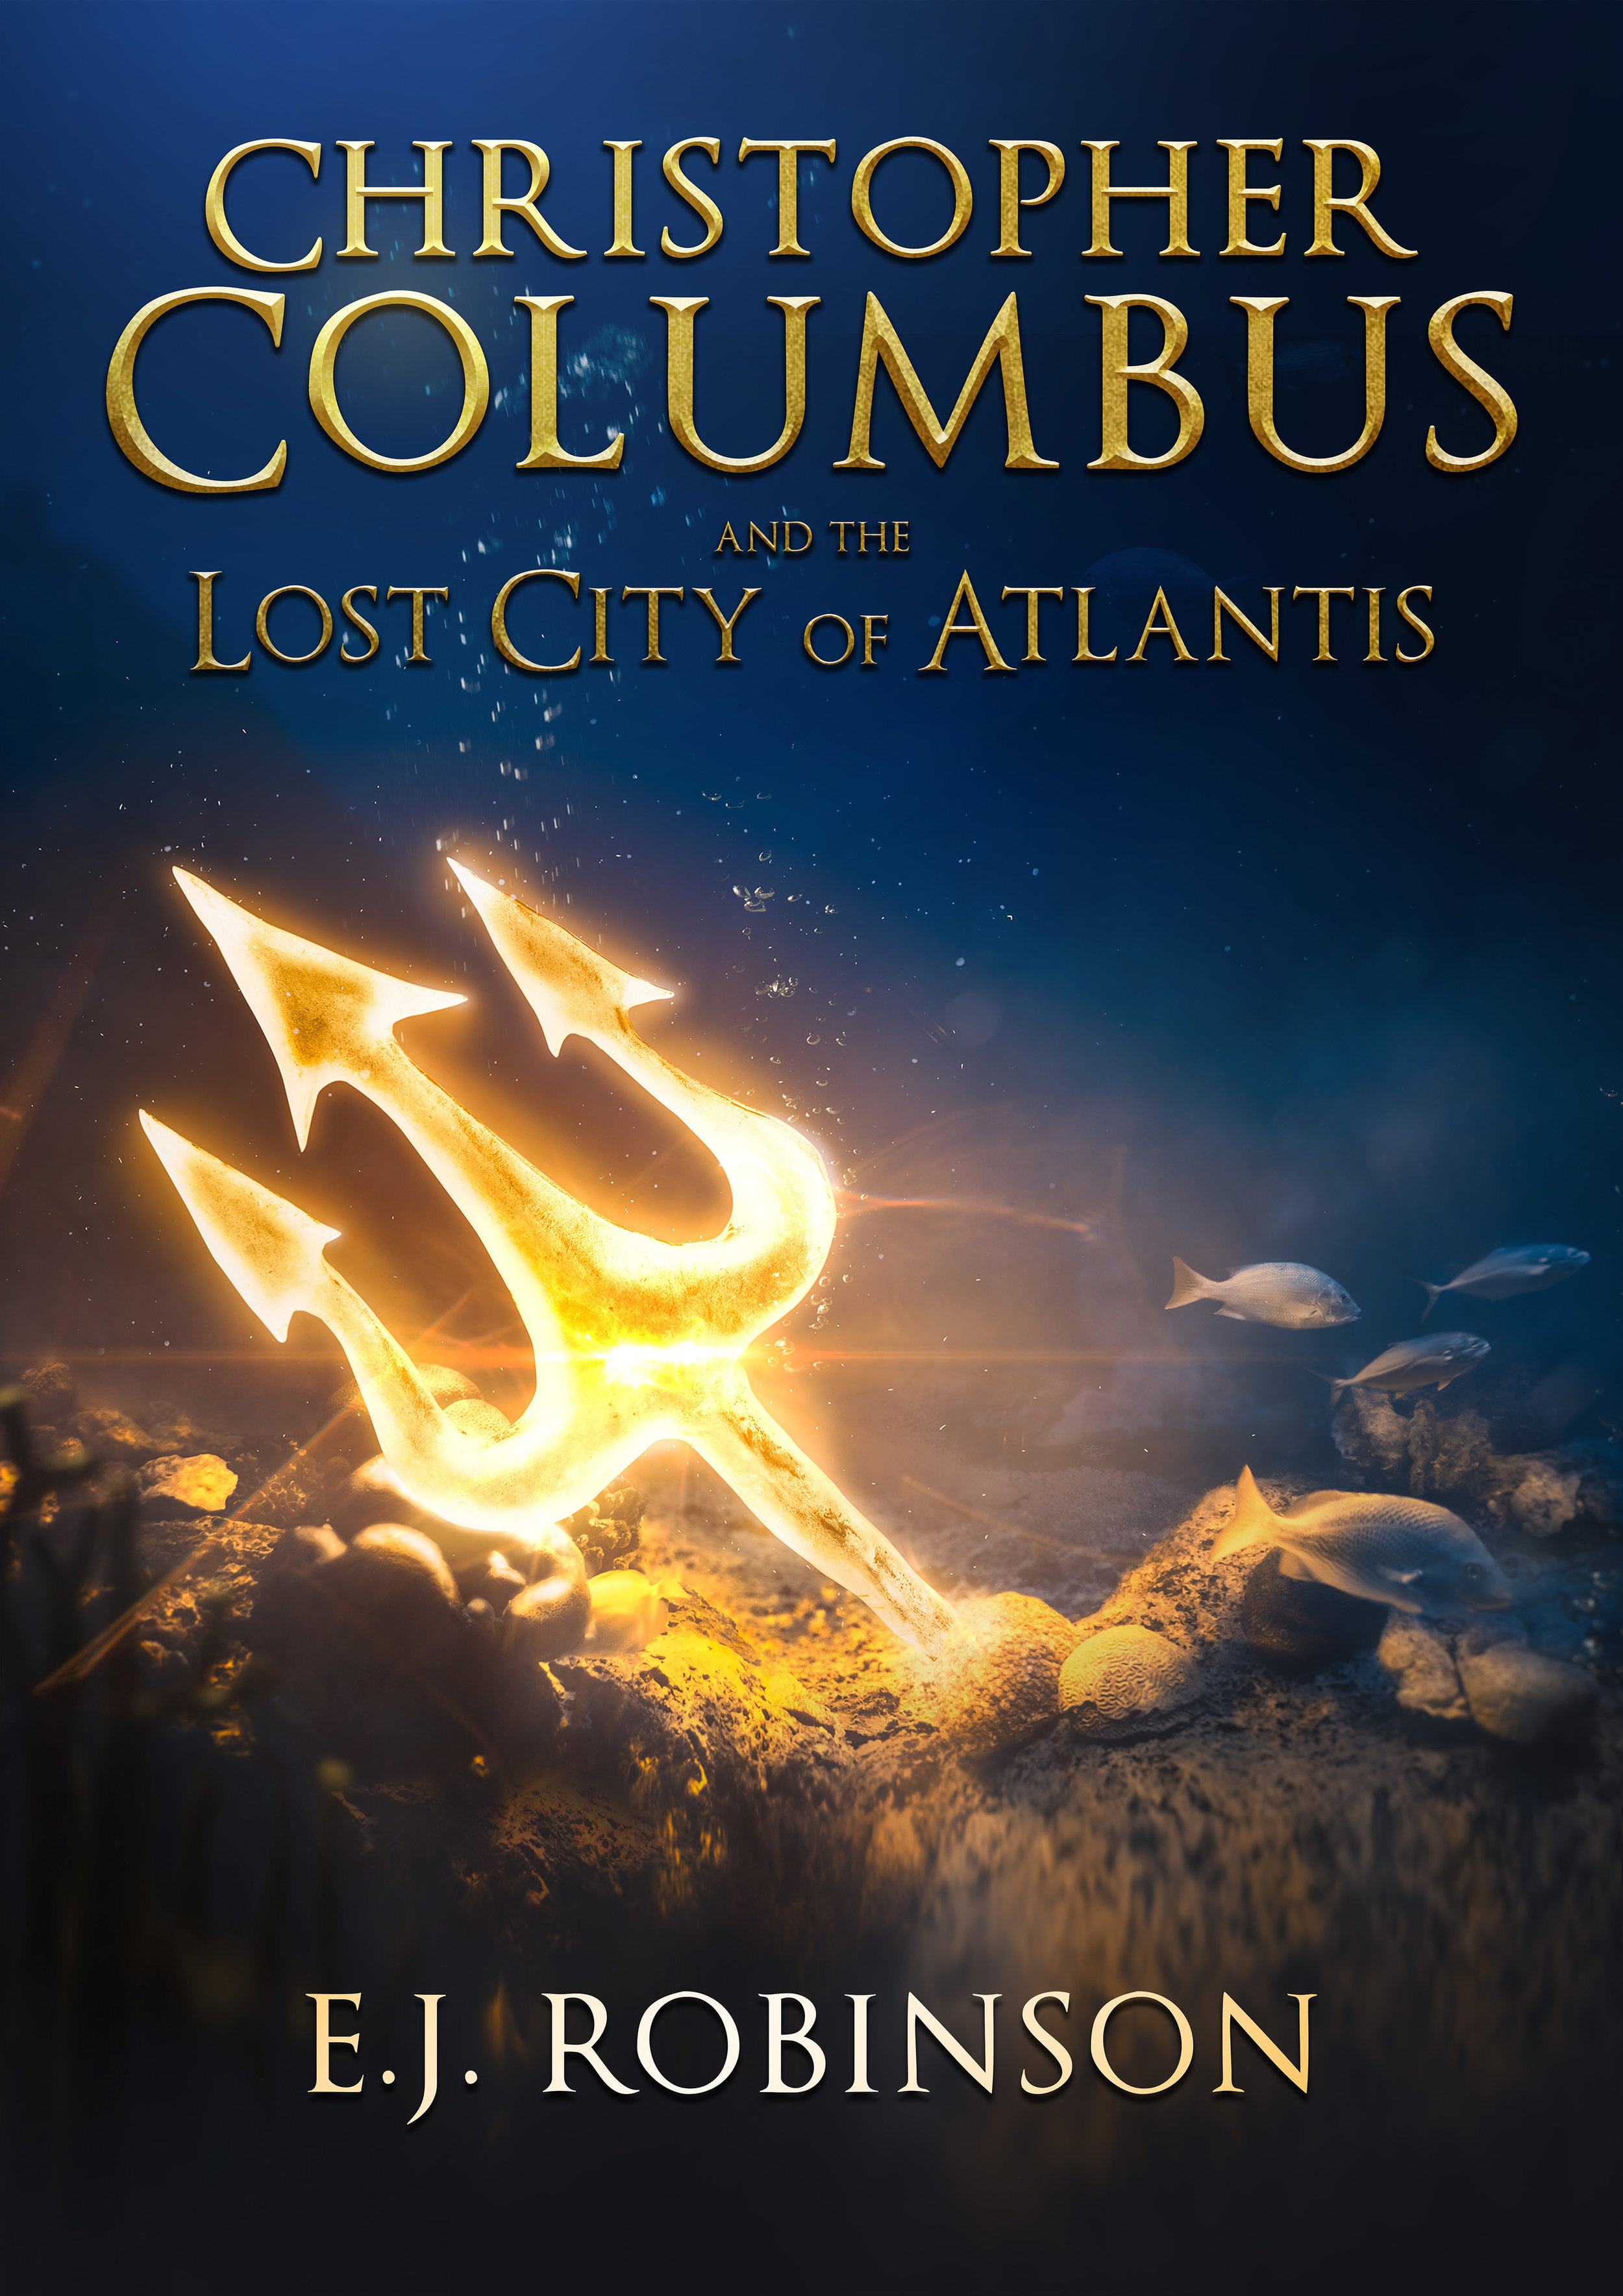 Christopher Columbus and the Lost City of Atlantis - History remembers Christopher Columbus as a steadfast explorer who crossed the Atlantic to discover America. But what if I told you that's not the real truth? That he was, in fact, a notorious adventurer who defied kings and gods in pursuit of a legendary treasure? Join him and his companions as they voyage to the lost city of Atlantis, where the fate of two worlds hangs in the balance.